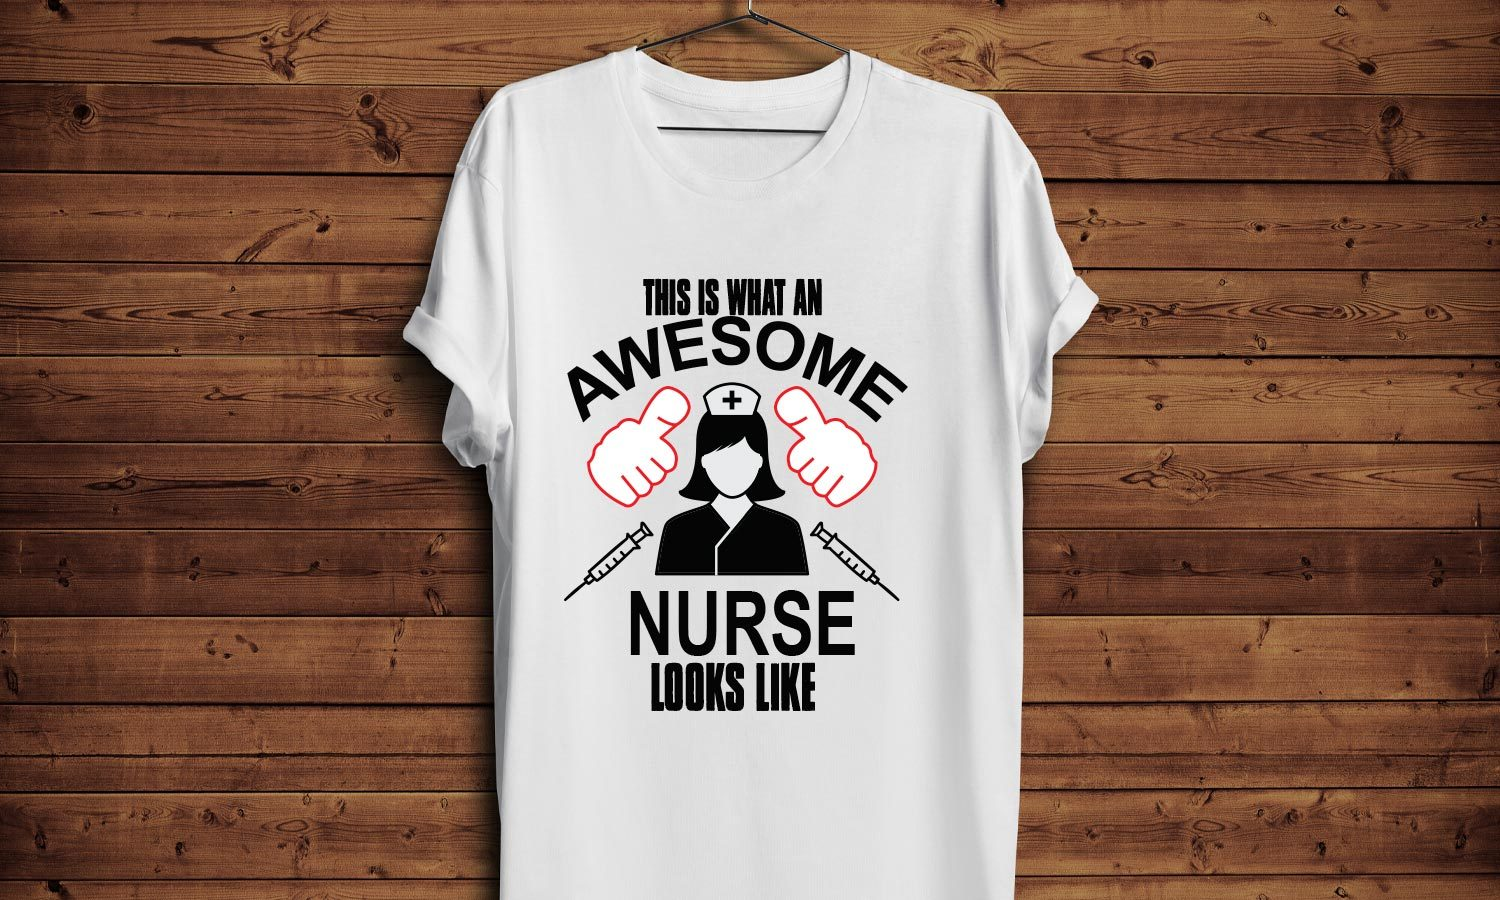 Awesome Nurse - Printed T-Shirt for Men, Women and Kids - TS212